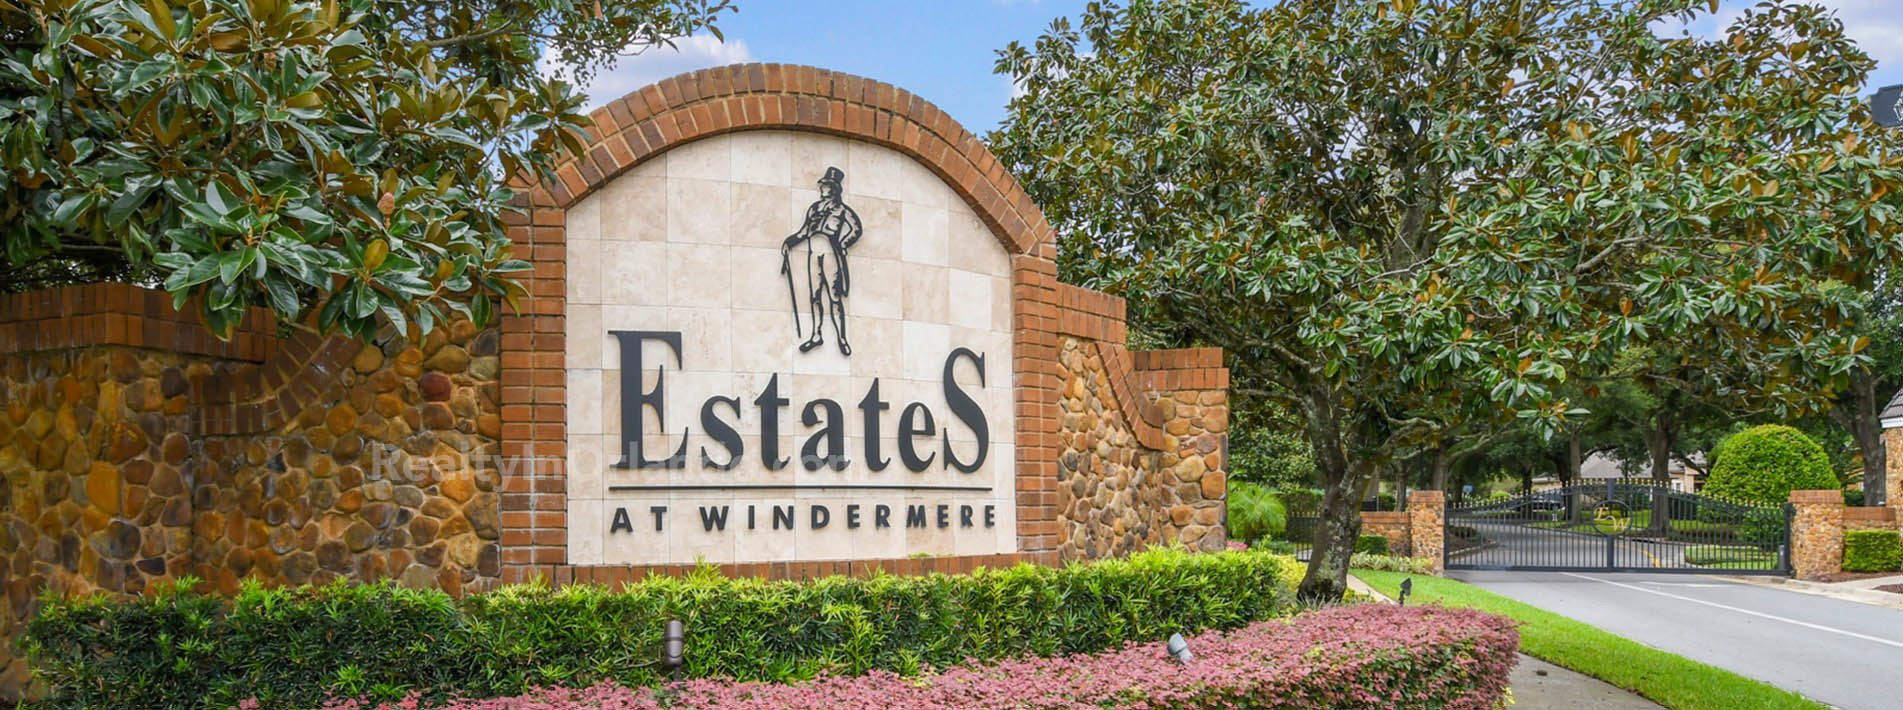 Estates at Windermere